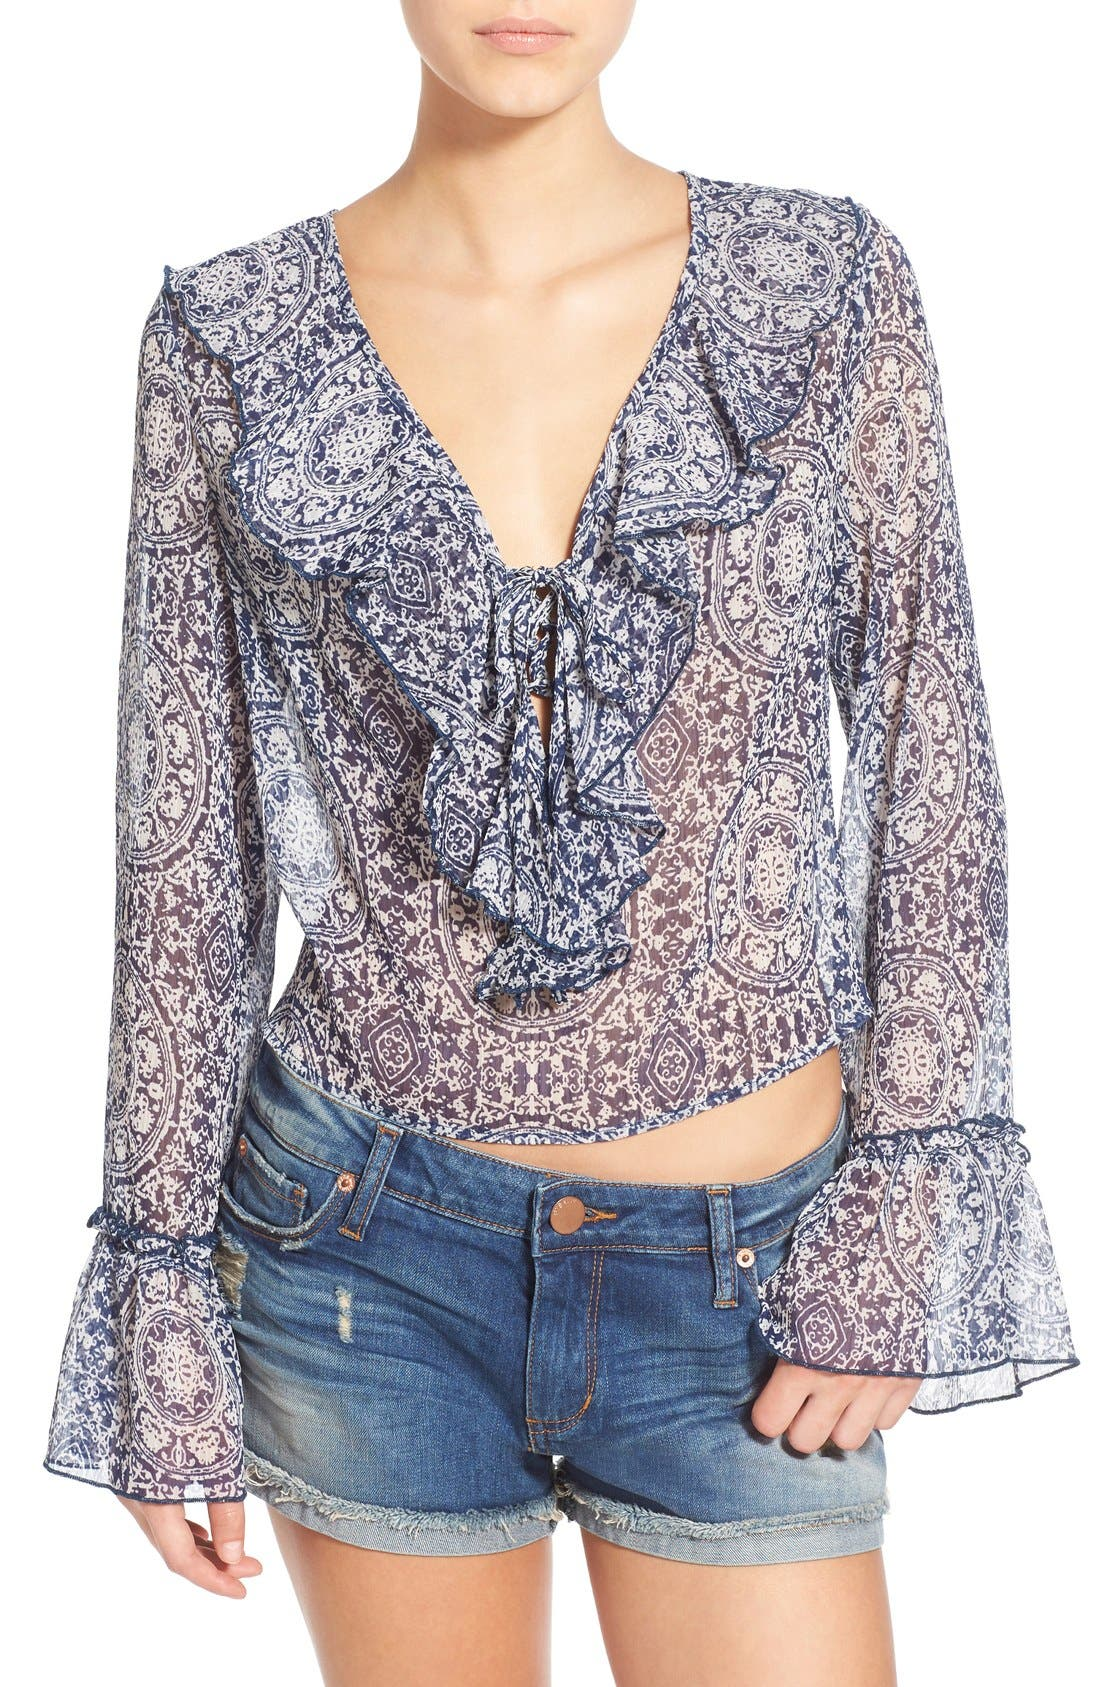 Alternate Image 1 Selected - Band of Gypsies Ruffle Front Sheer Blouse